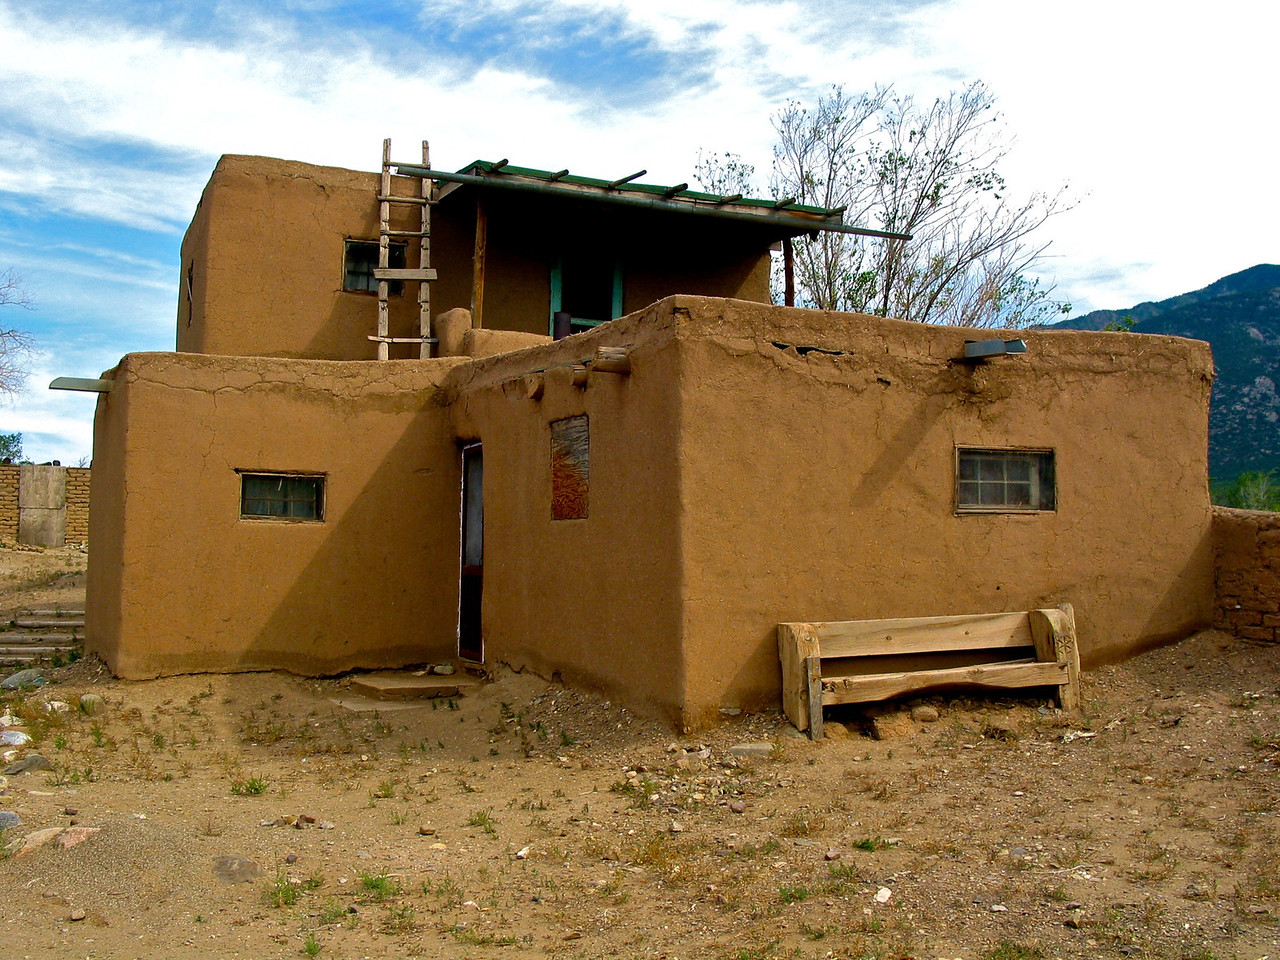 One of Taos's strongest institutions is the family. Descent on both the father and the mother's side of the family is equally recognized. Each primary family lives in a separate dwelling so when a couple gets married, they move to their own home. With relatives so near by, everyone is available to help care for the children. The elderly teach the young the values and traditions that have been handed down, which protects the integrity of the Taos culture.